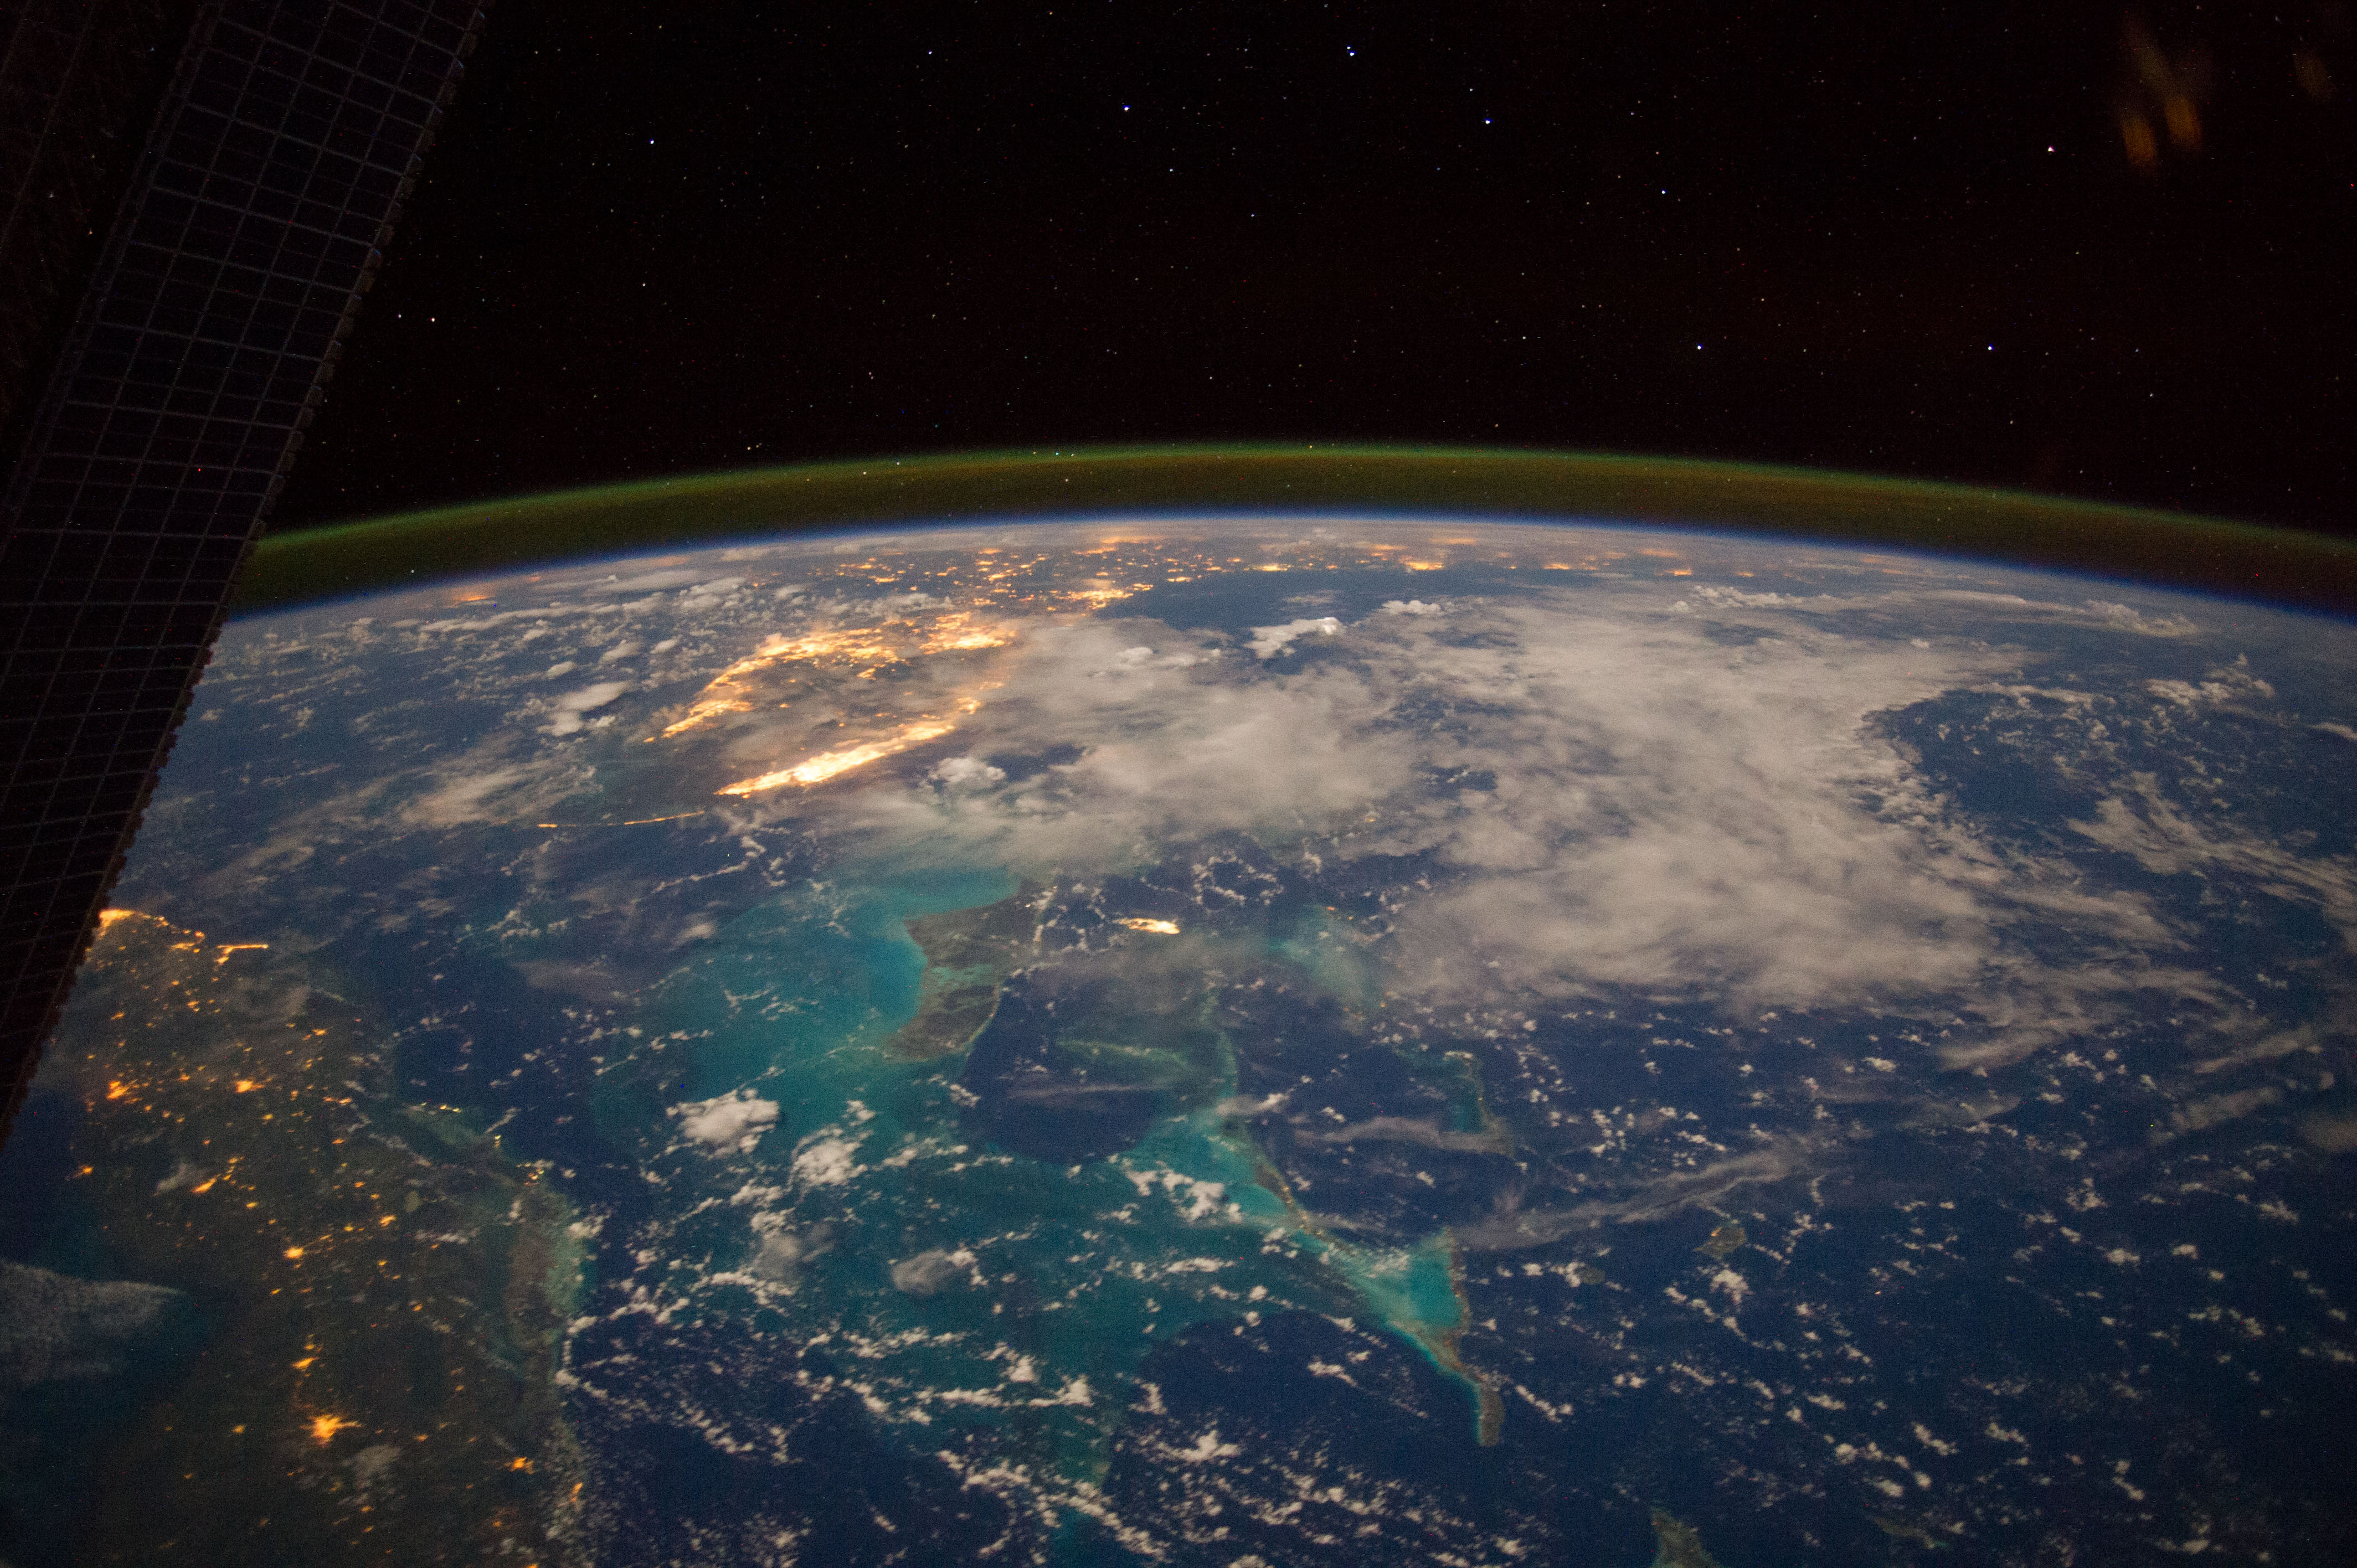 An Astronaut's View from Space | NASA